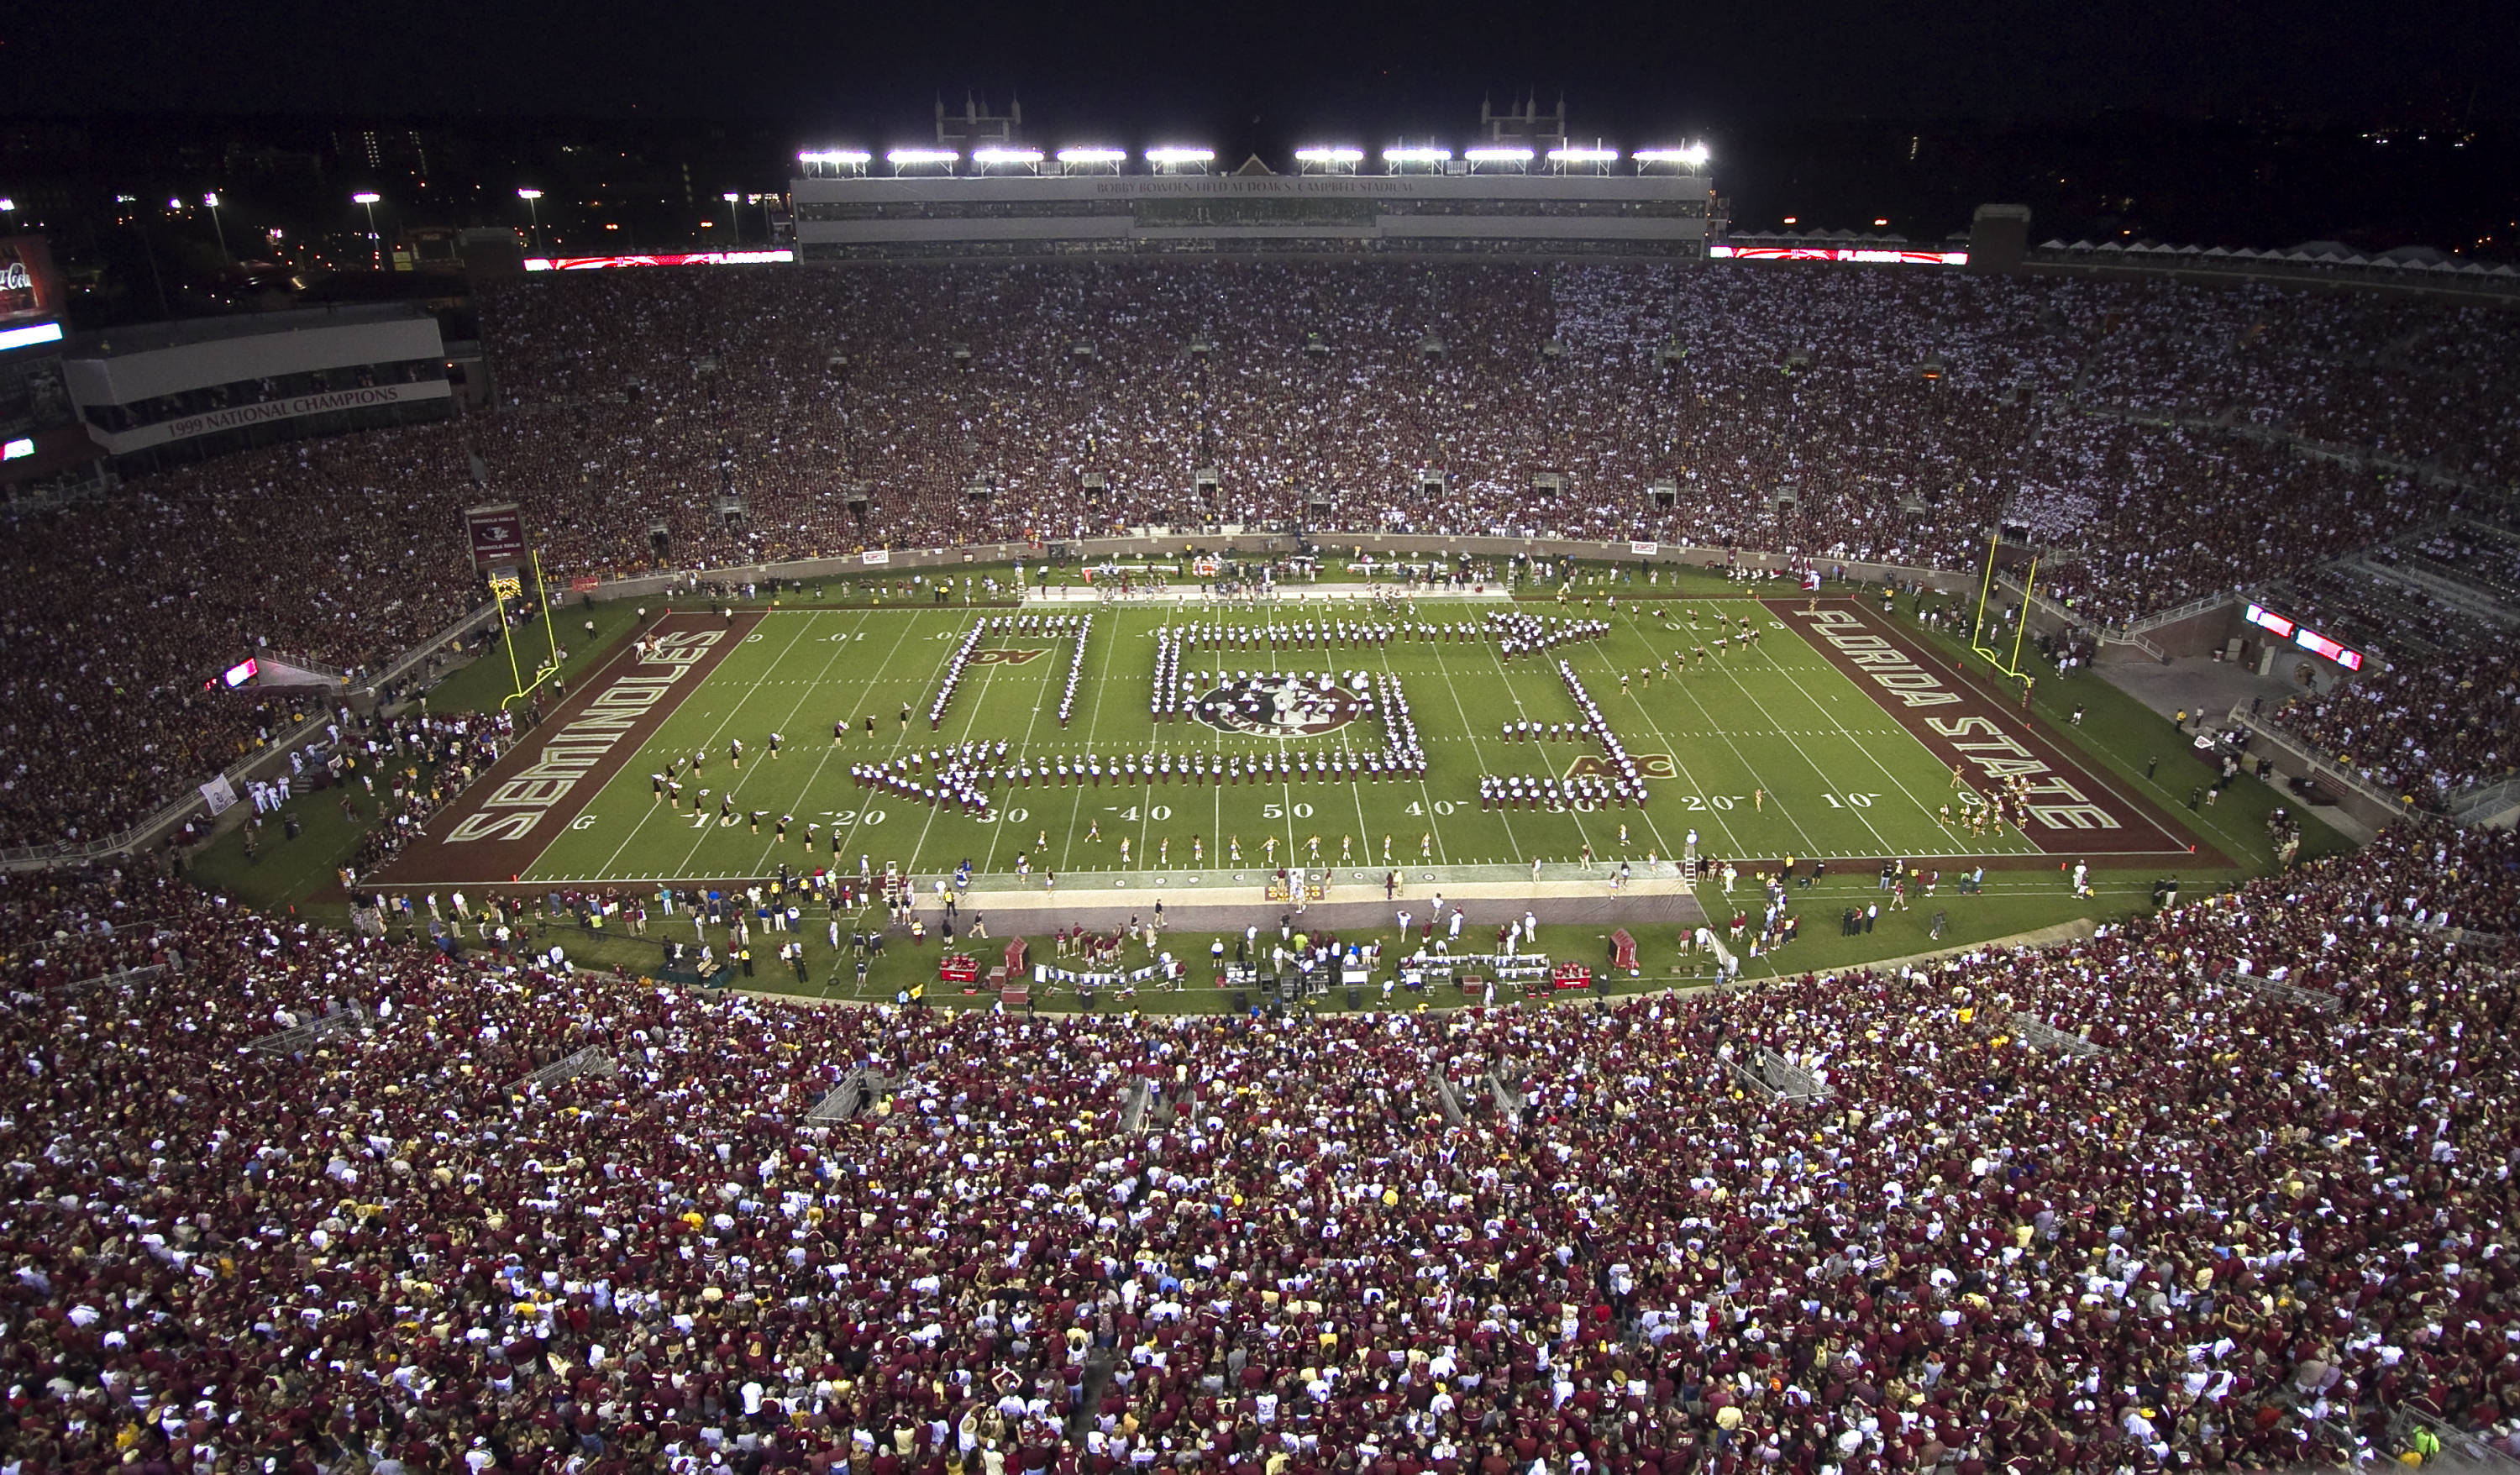 Marching Chiefs before a sellout crowd. FSU vs Oklahoma 9/18/11 Steve Musco